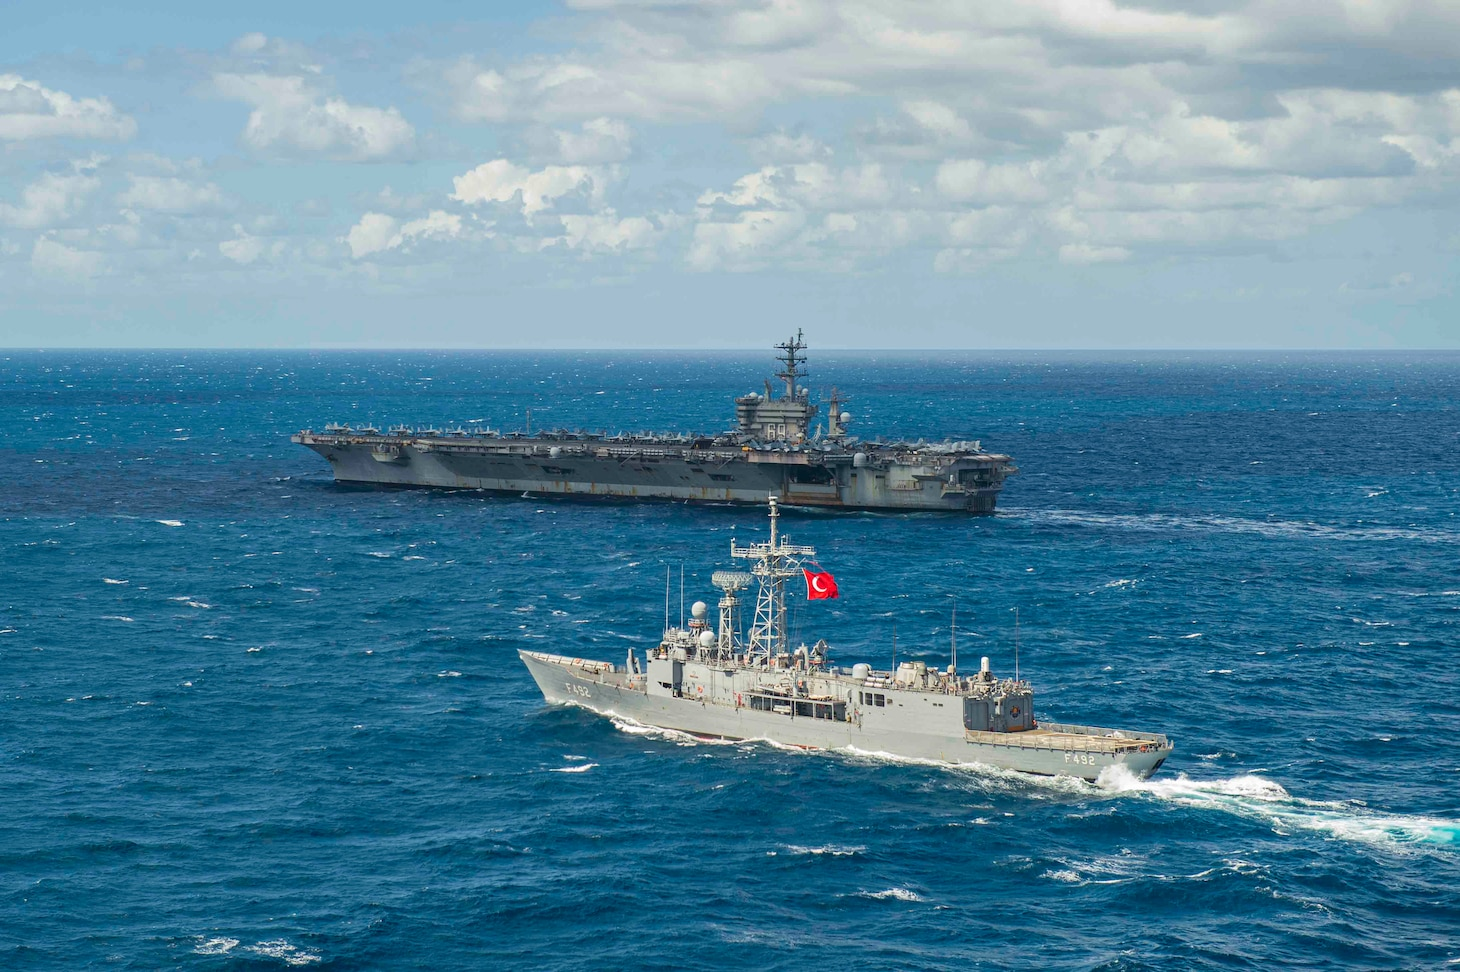 210317-N-MD713-1007 MEDITERRANEAN SEA (March 17, 2021) The Turkish frigate TCG Gemlik (F 492), front, sails alongside the Nimitz-class aircraft carrier USS Dwight D. Eisenhower (CVN 69), in the Mediterranean Sea, March 17, 2021. The IKE Carrier Strike Group is on a scheduled deployment in the U.S. Sixth Fleet area of operations in support of U.S. national interests and security in Europe and Africa. (U.S. Navy photo by Mass Communication Specialist 3rd Class Cameron Pinske/Released)